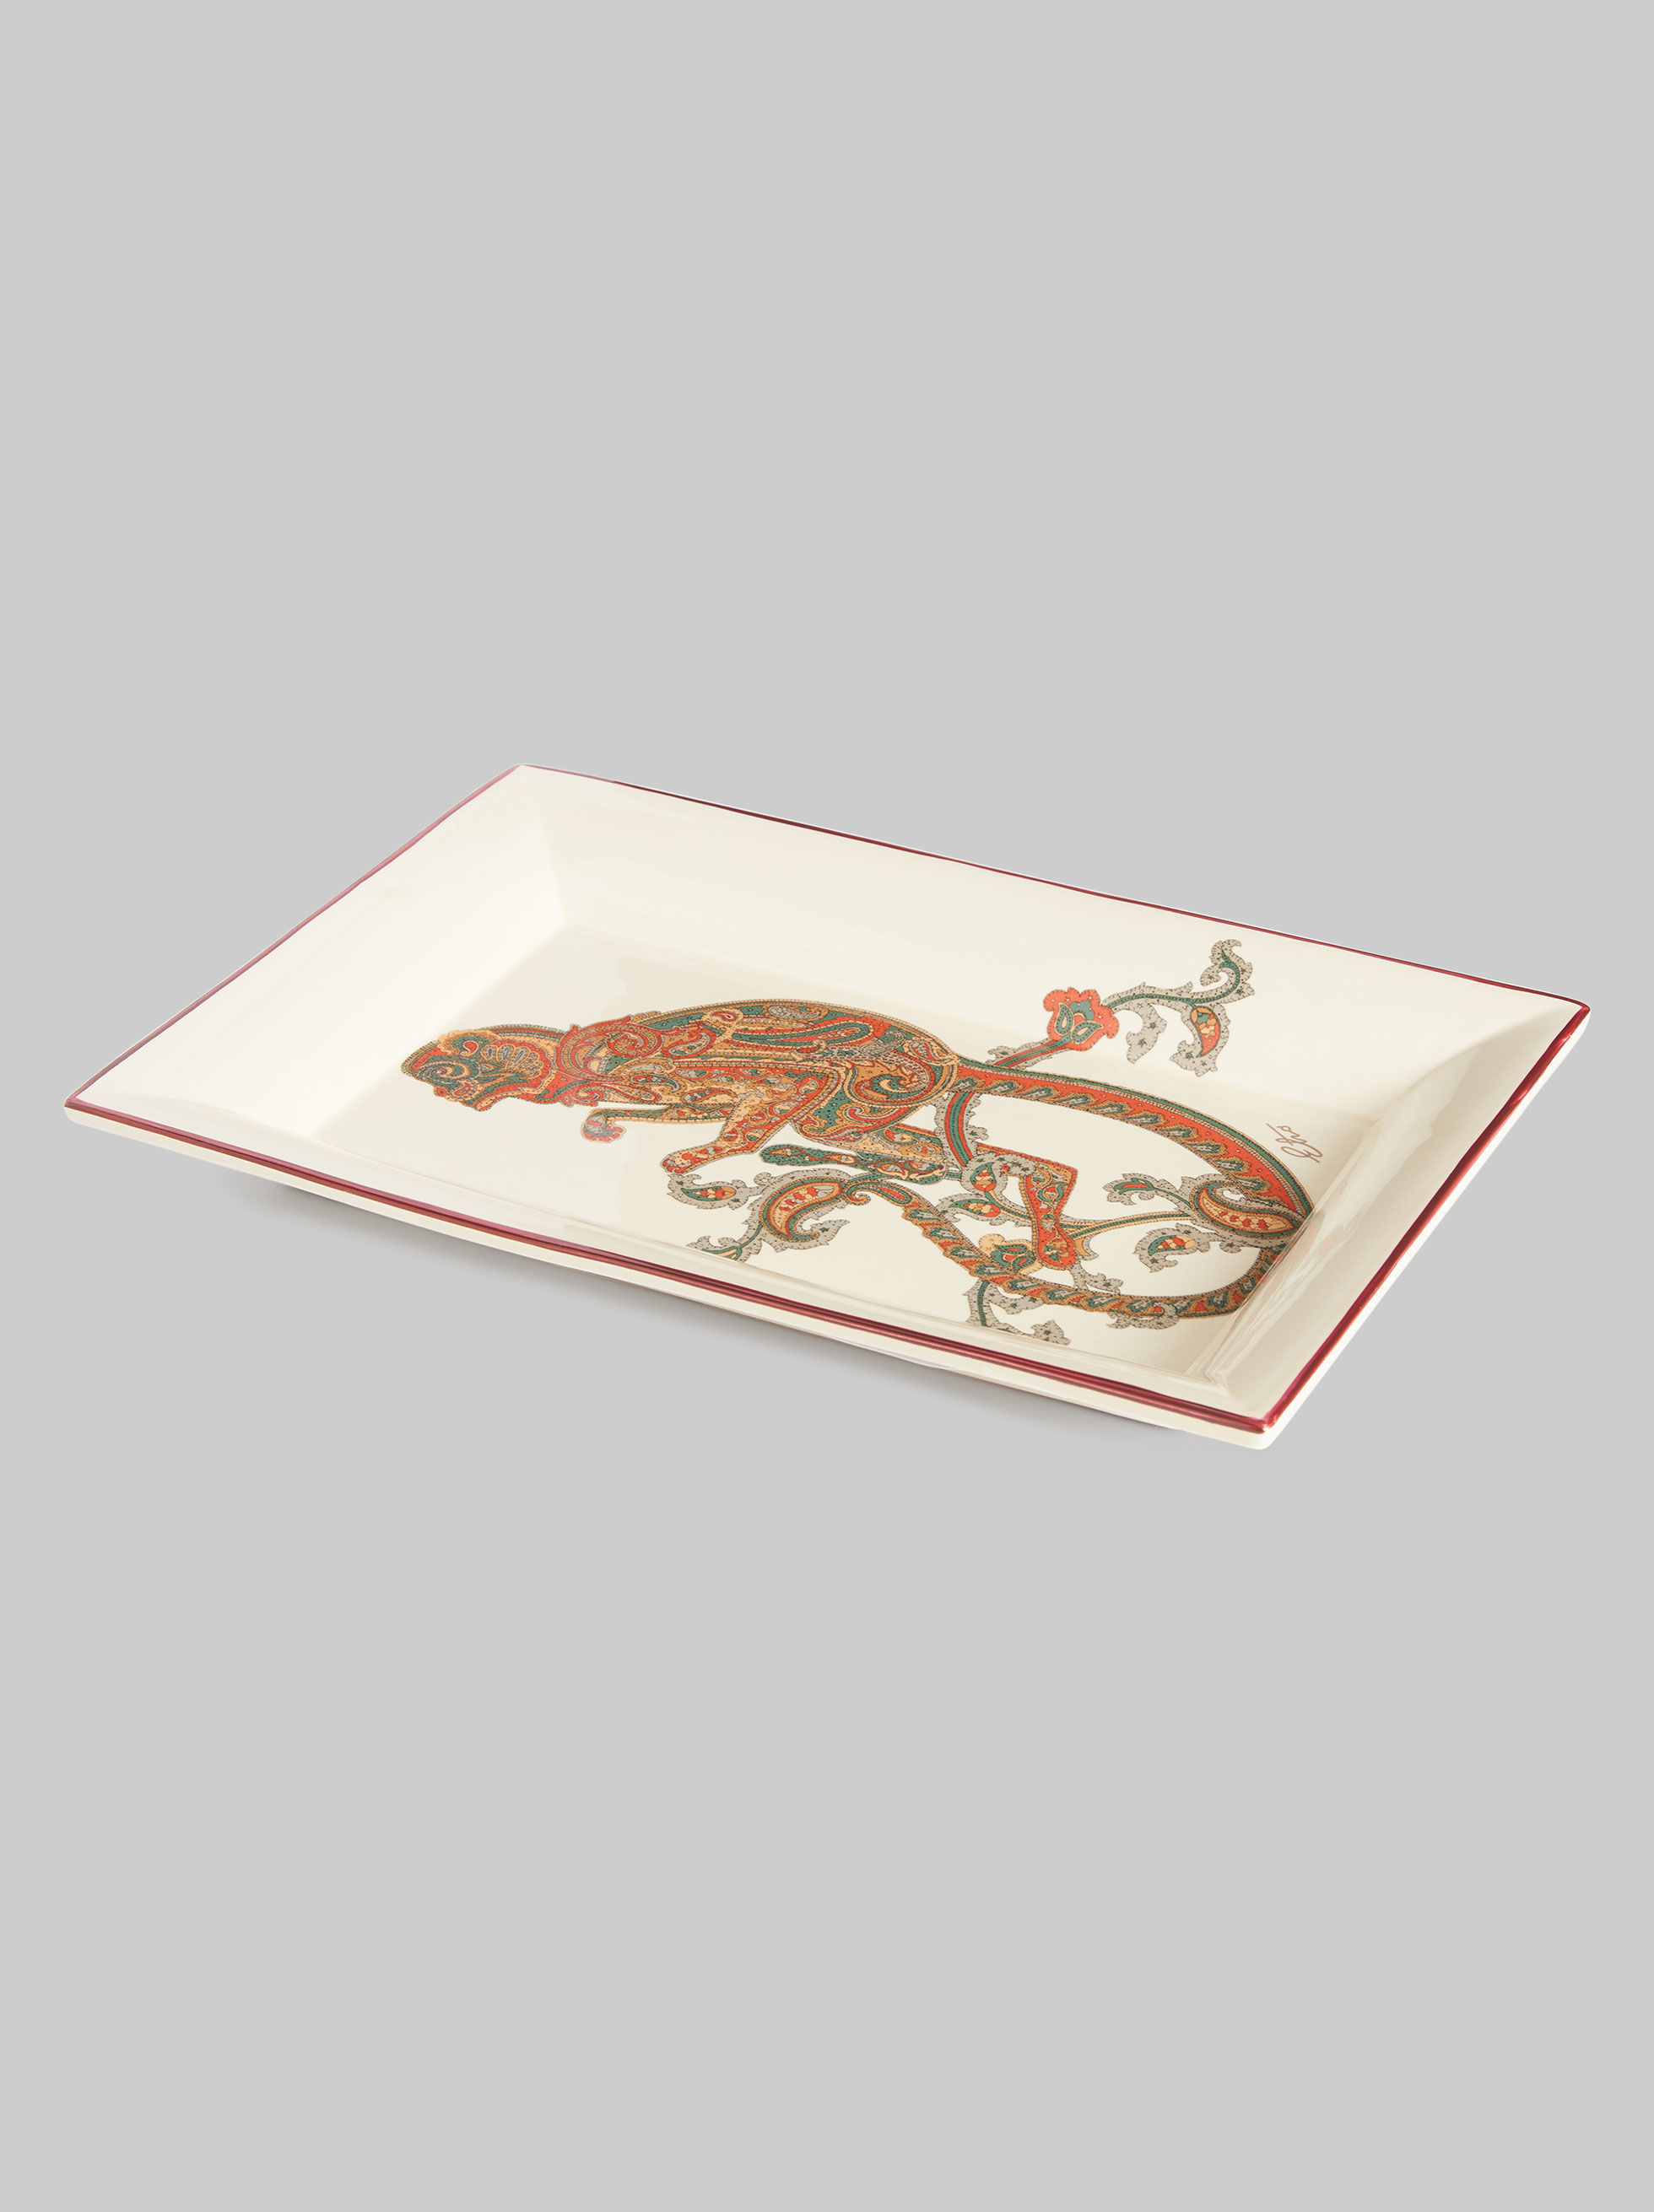 RECTANGULAR CERAMIC TRAY WITH MONKEY